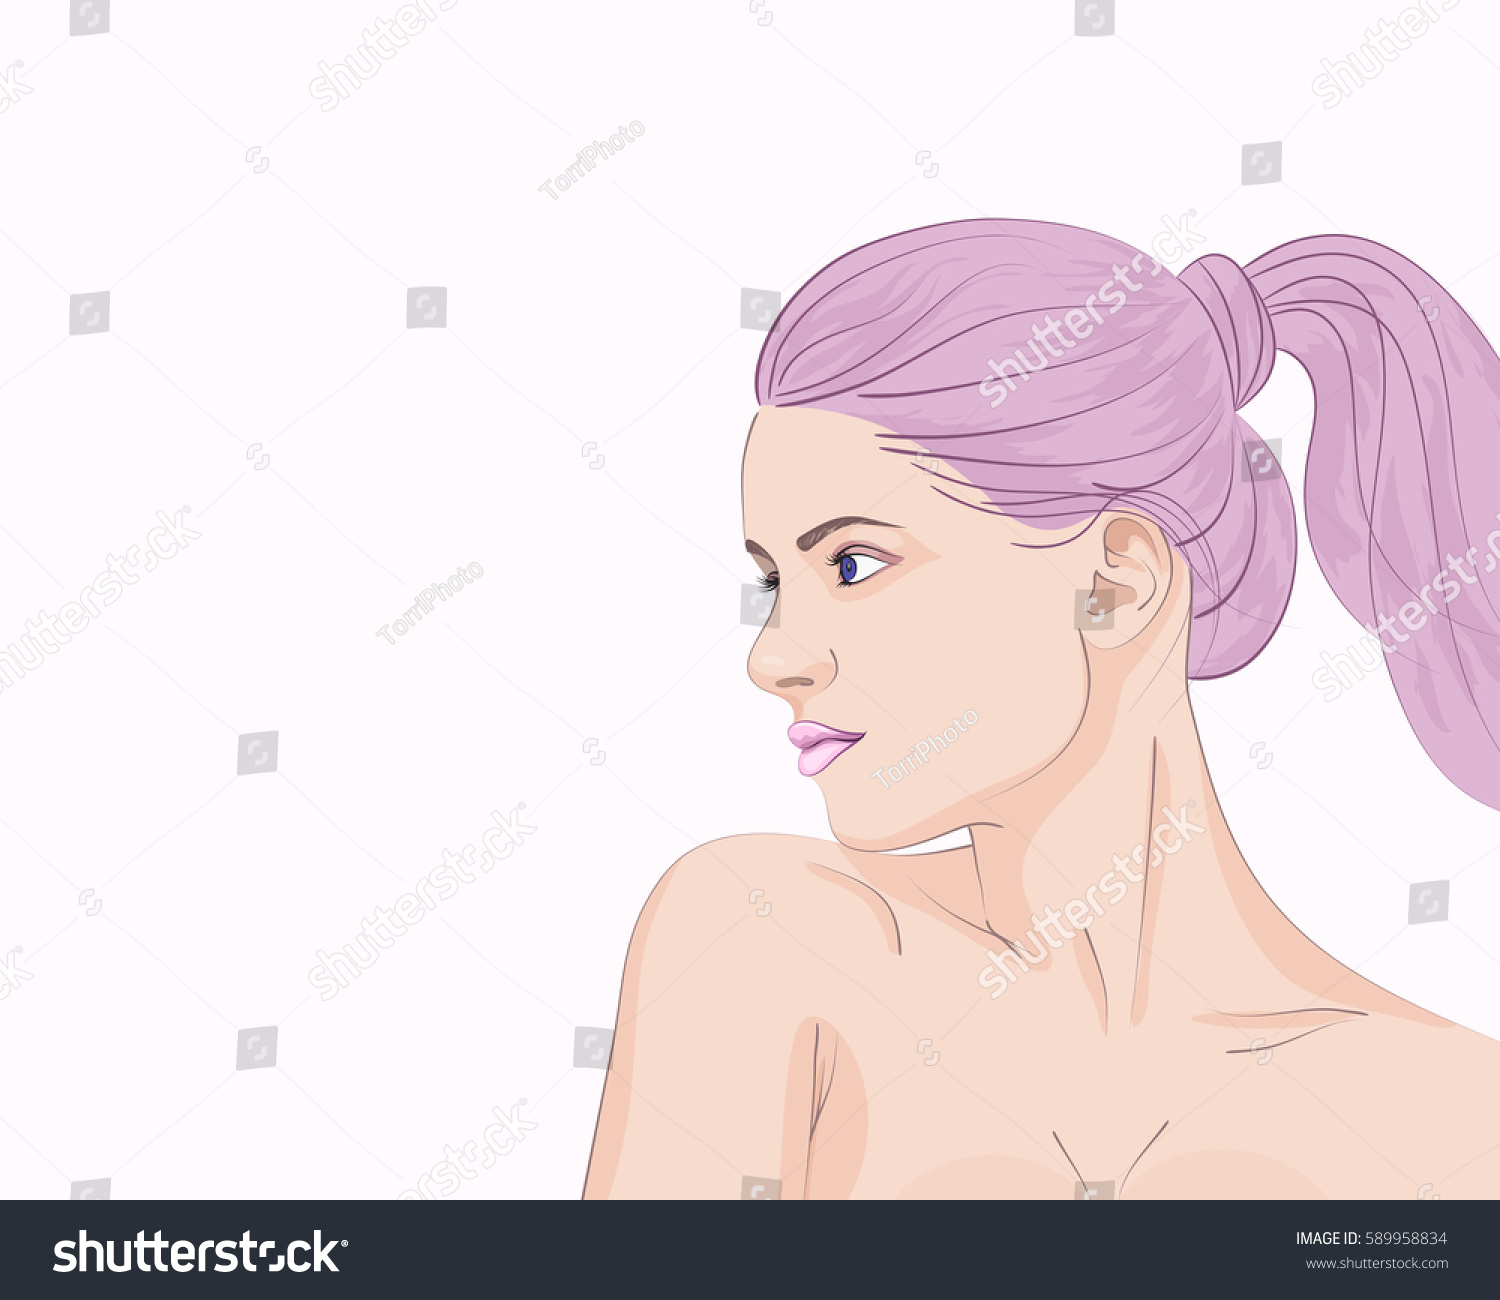 https://www.shutterstock.com/image-vector/beautiful-portrait-sensual-young-woman-pink-589958834